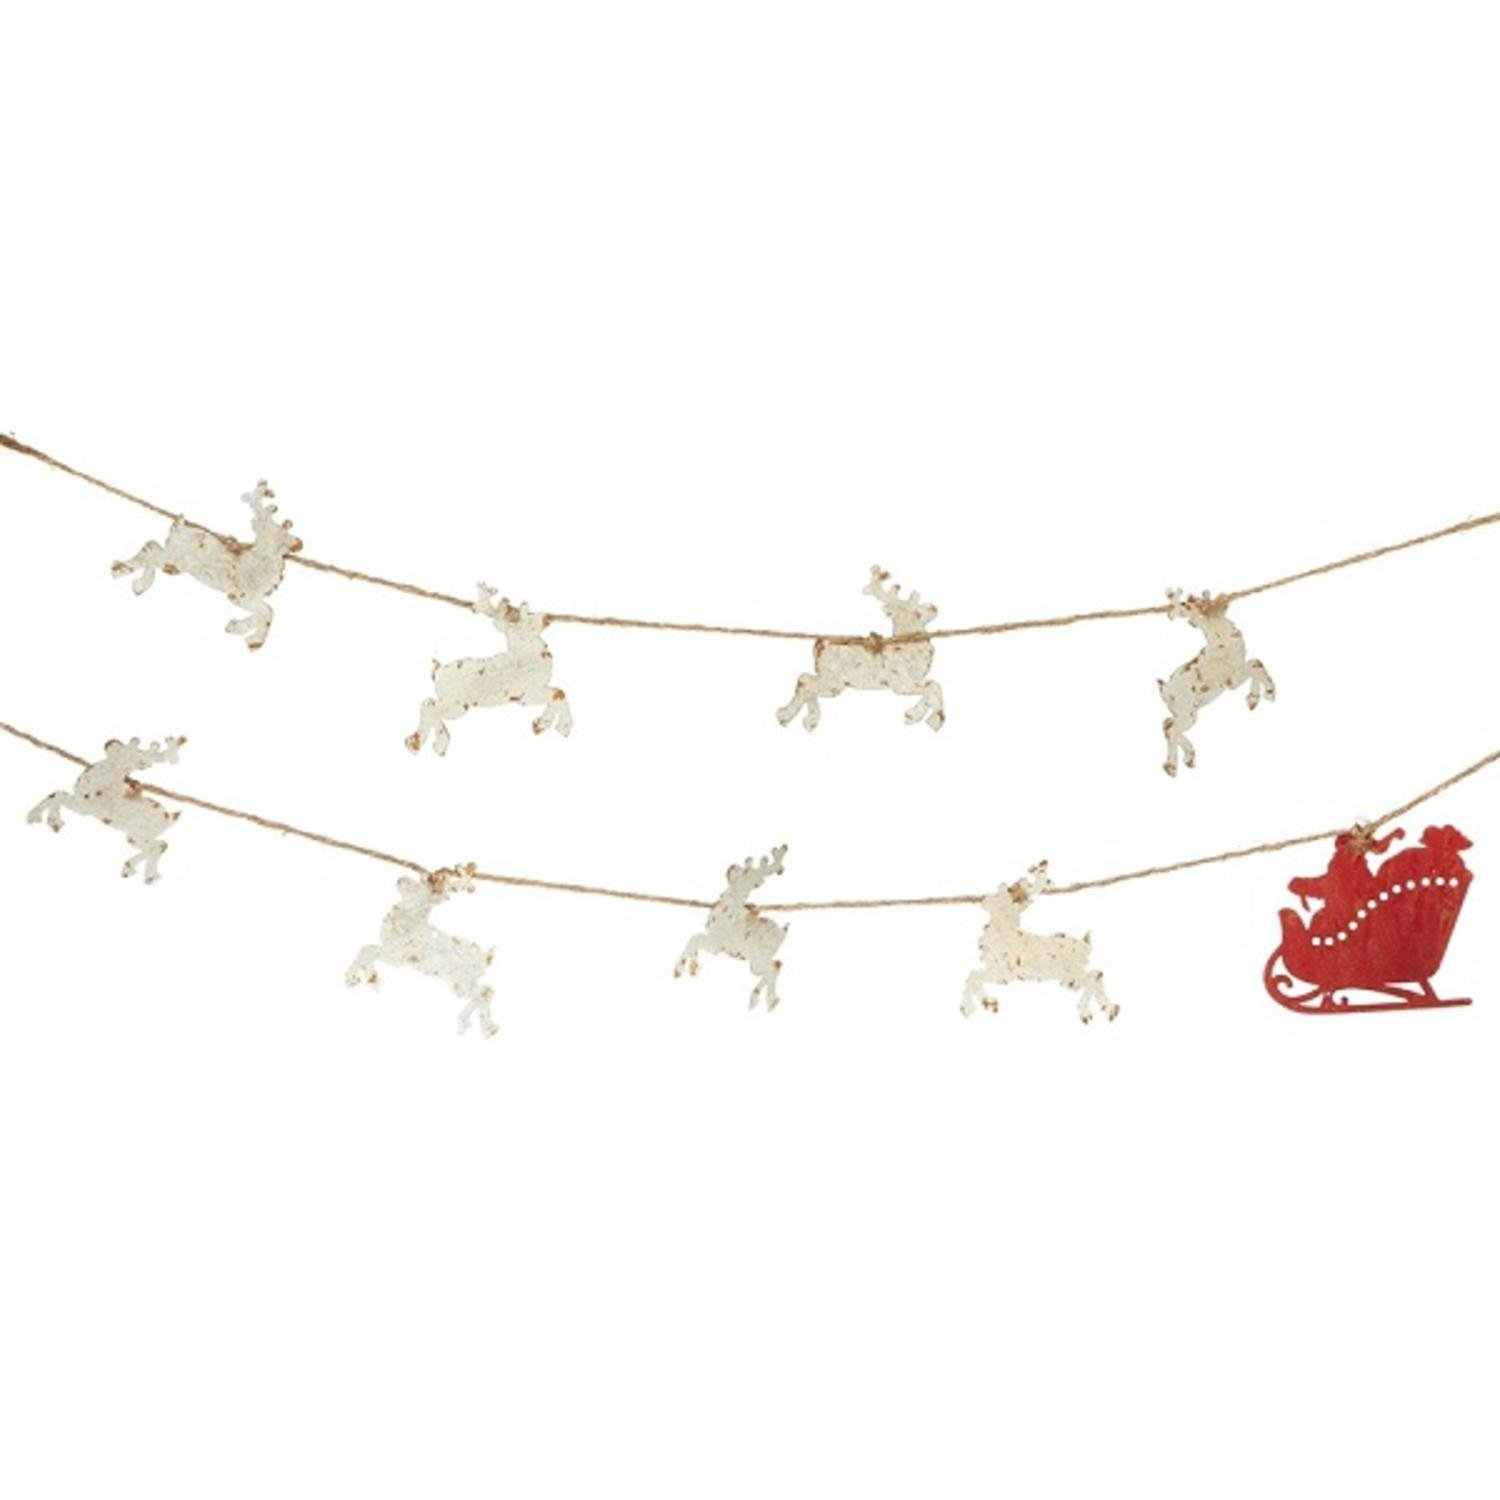 Midwest Gloves Pack of 4 Off White and Red Rustic Santa and Reindeer Garland Unlit 78''